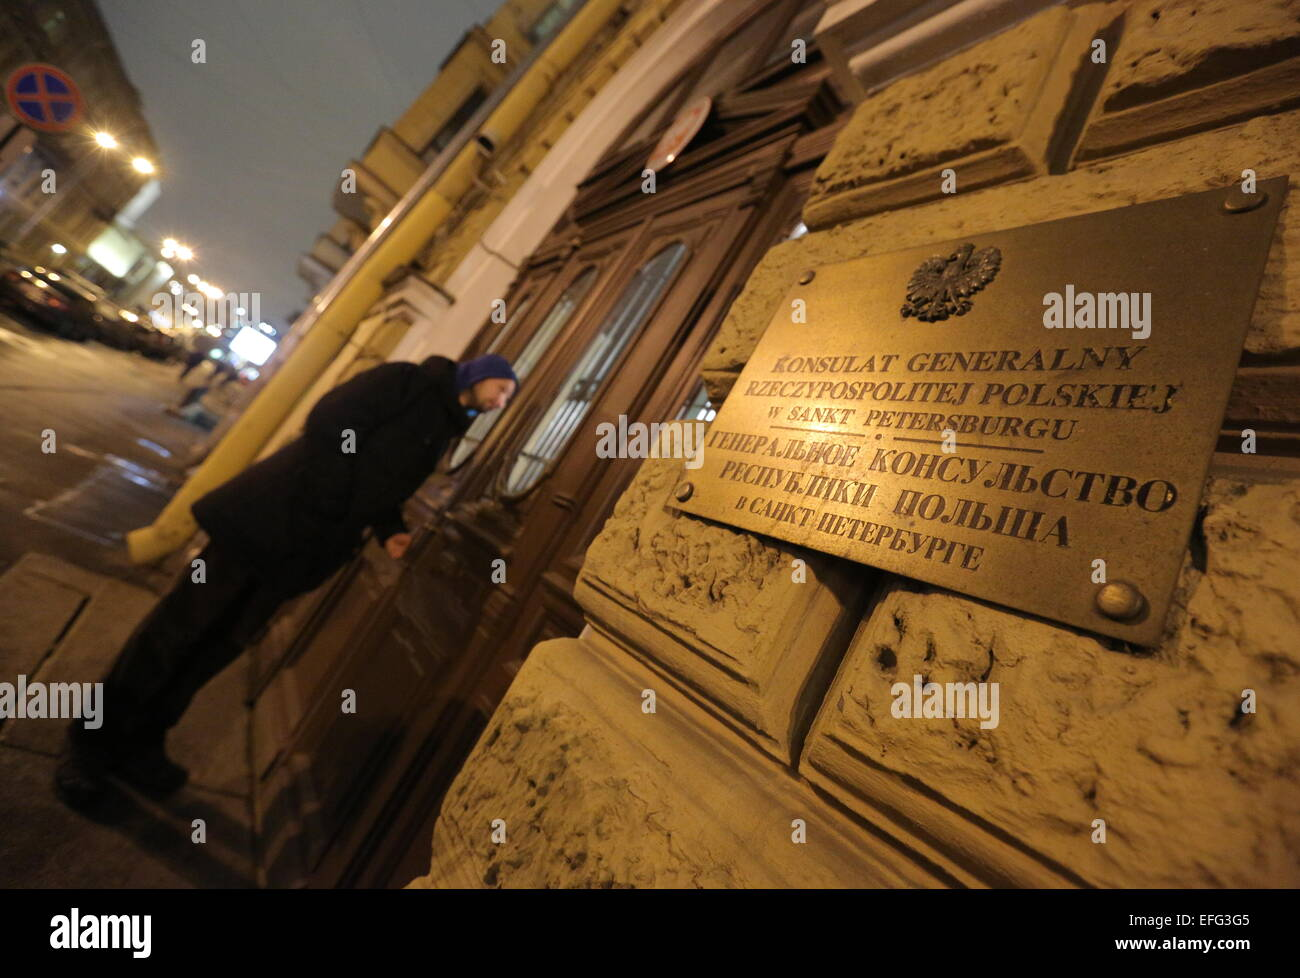 St. Petersburg, Russia. 3rd Feb, 2015. A man seen by a building of the Polish Consulate General in 5th Sovetskaya - Stock Image